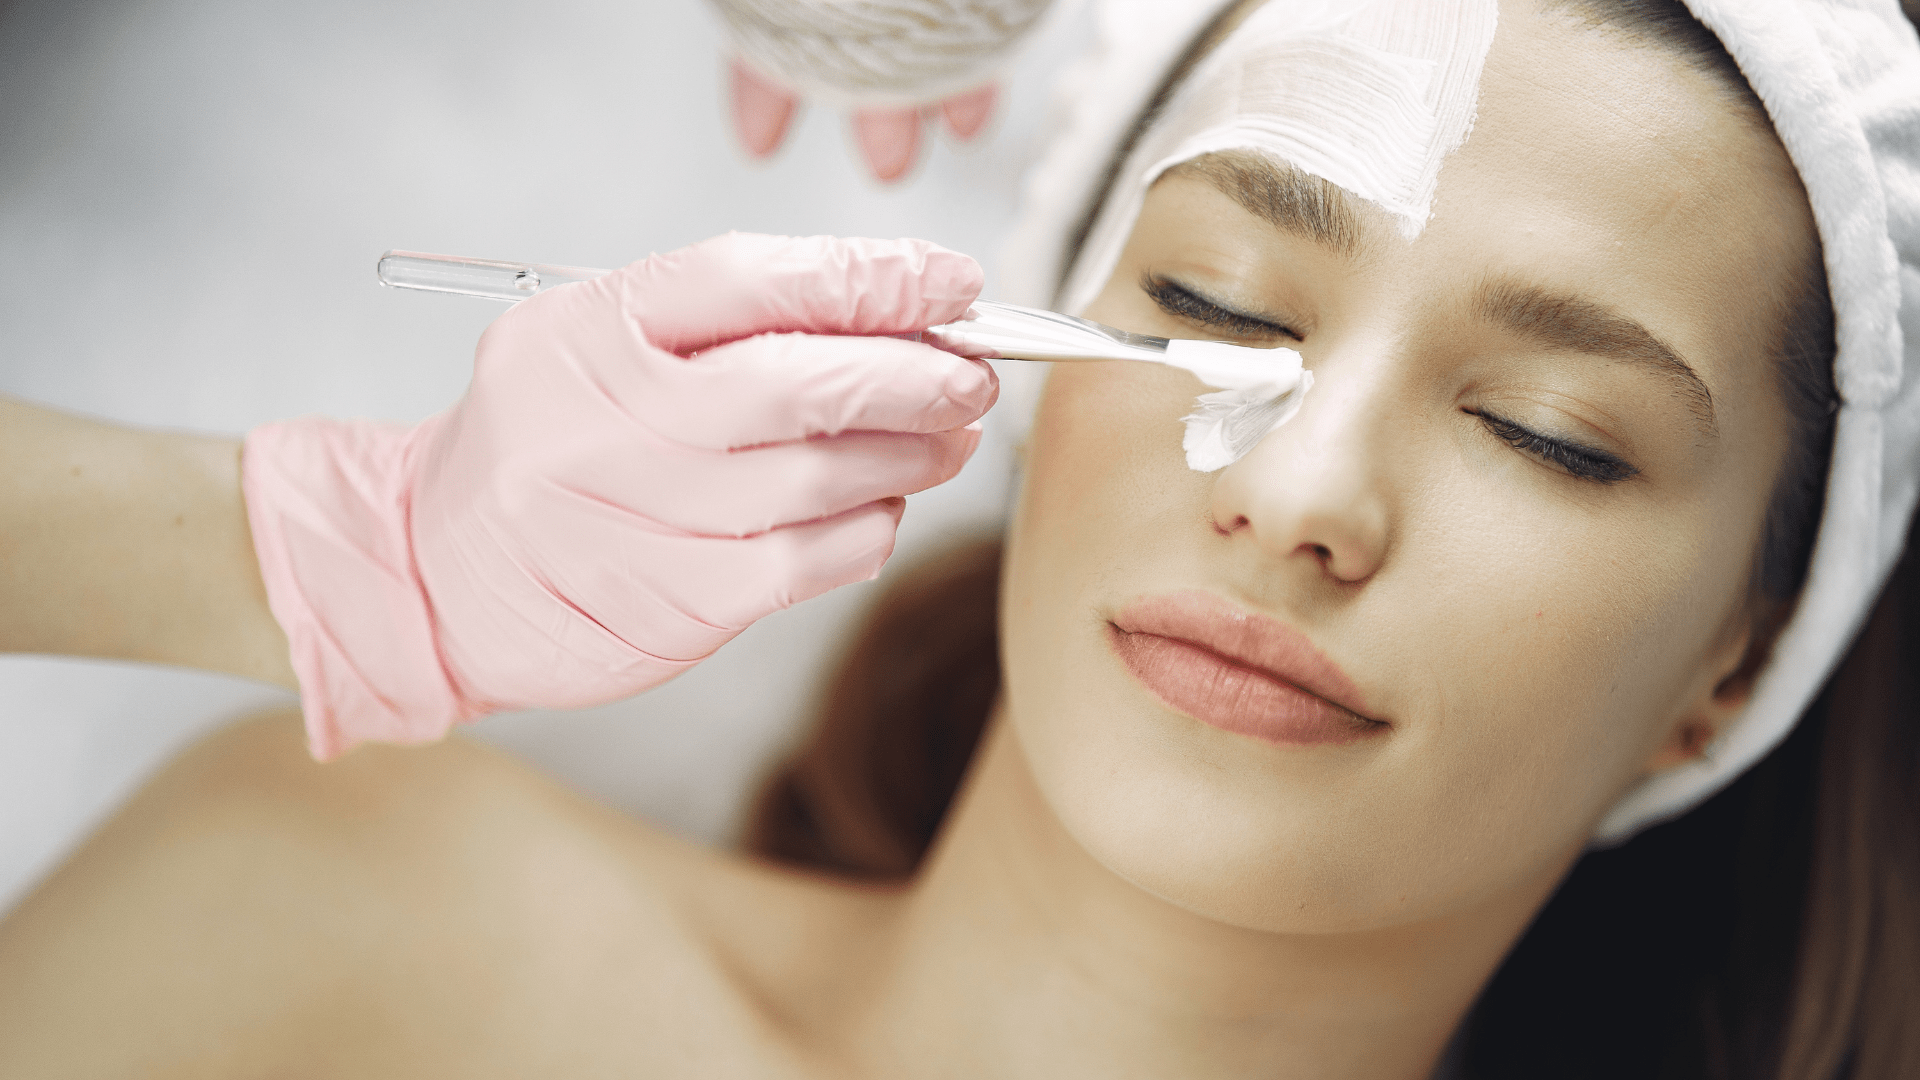 Skincare facial for women beauty regimen | luxury lifestyle and home by Brittany Corporation